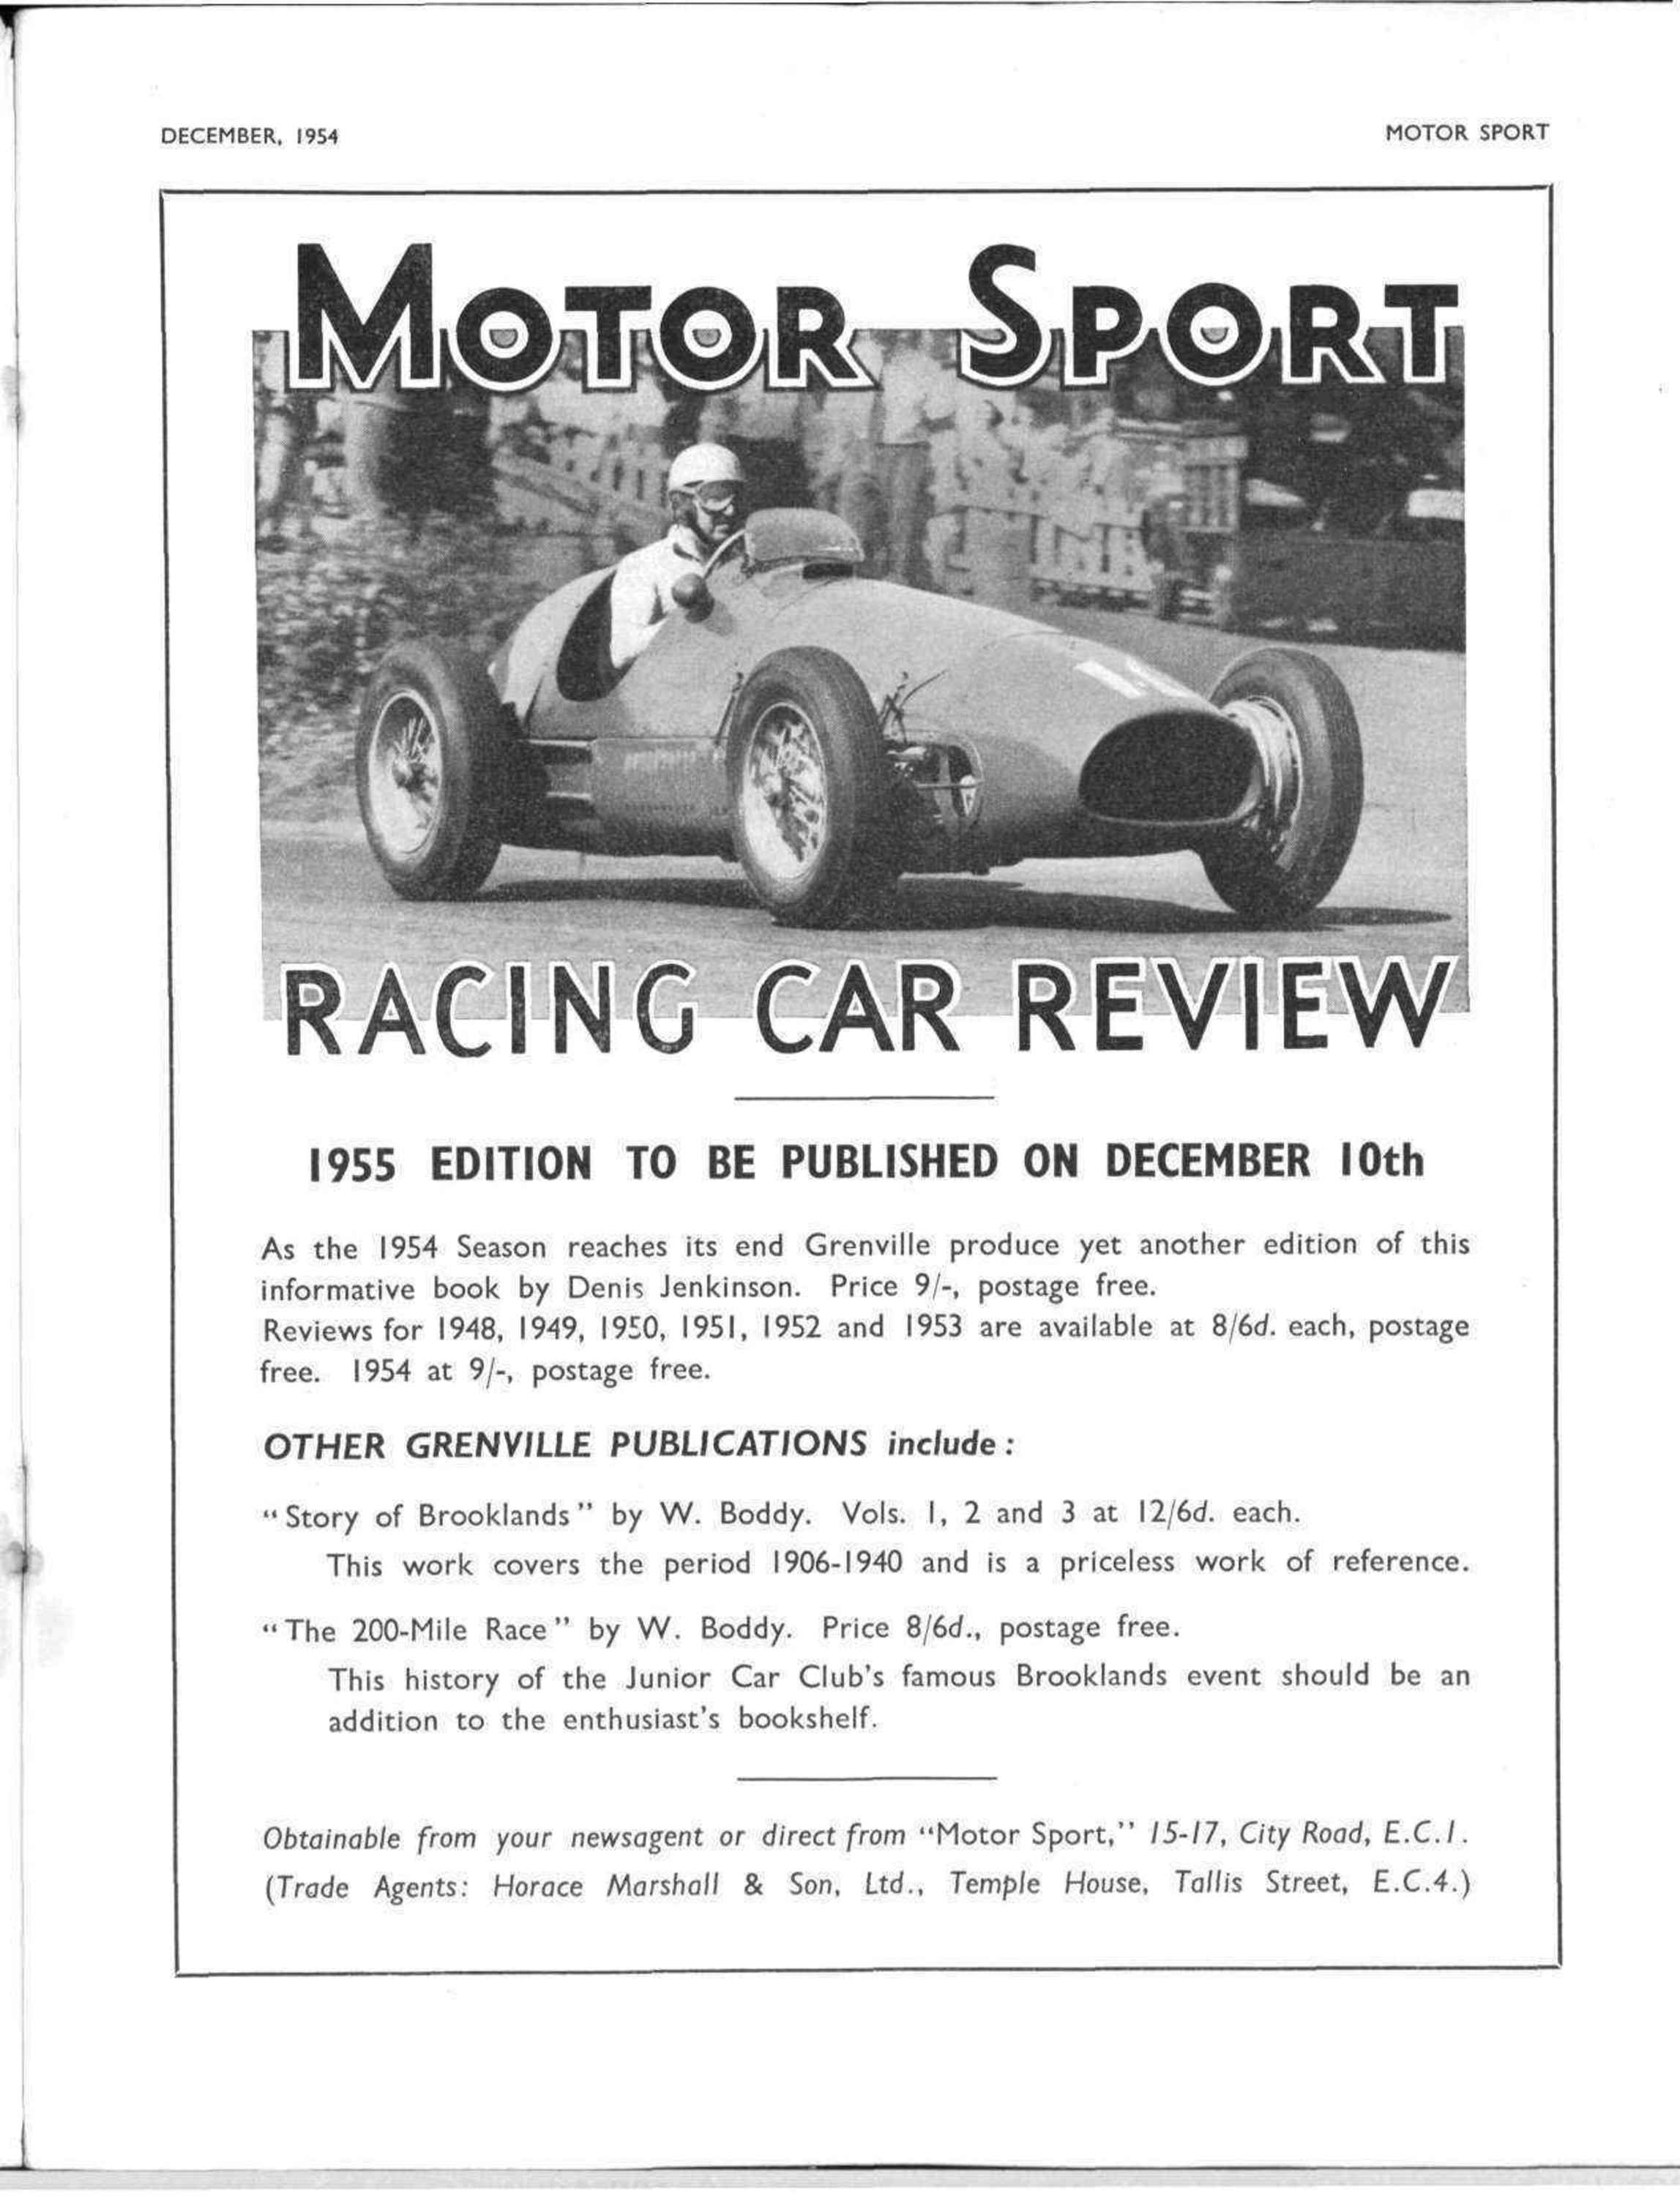 Motor Sport Racing Car Review